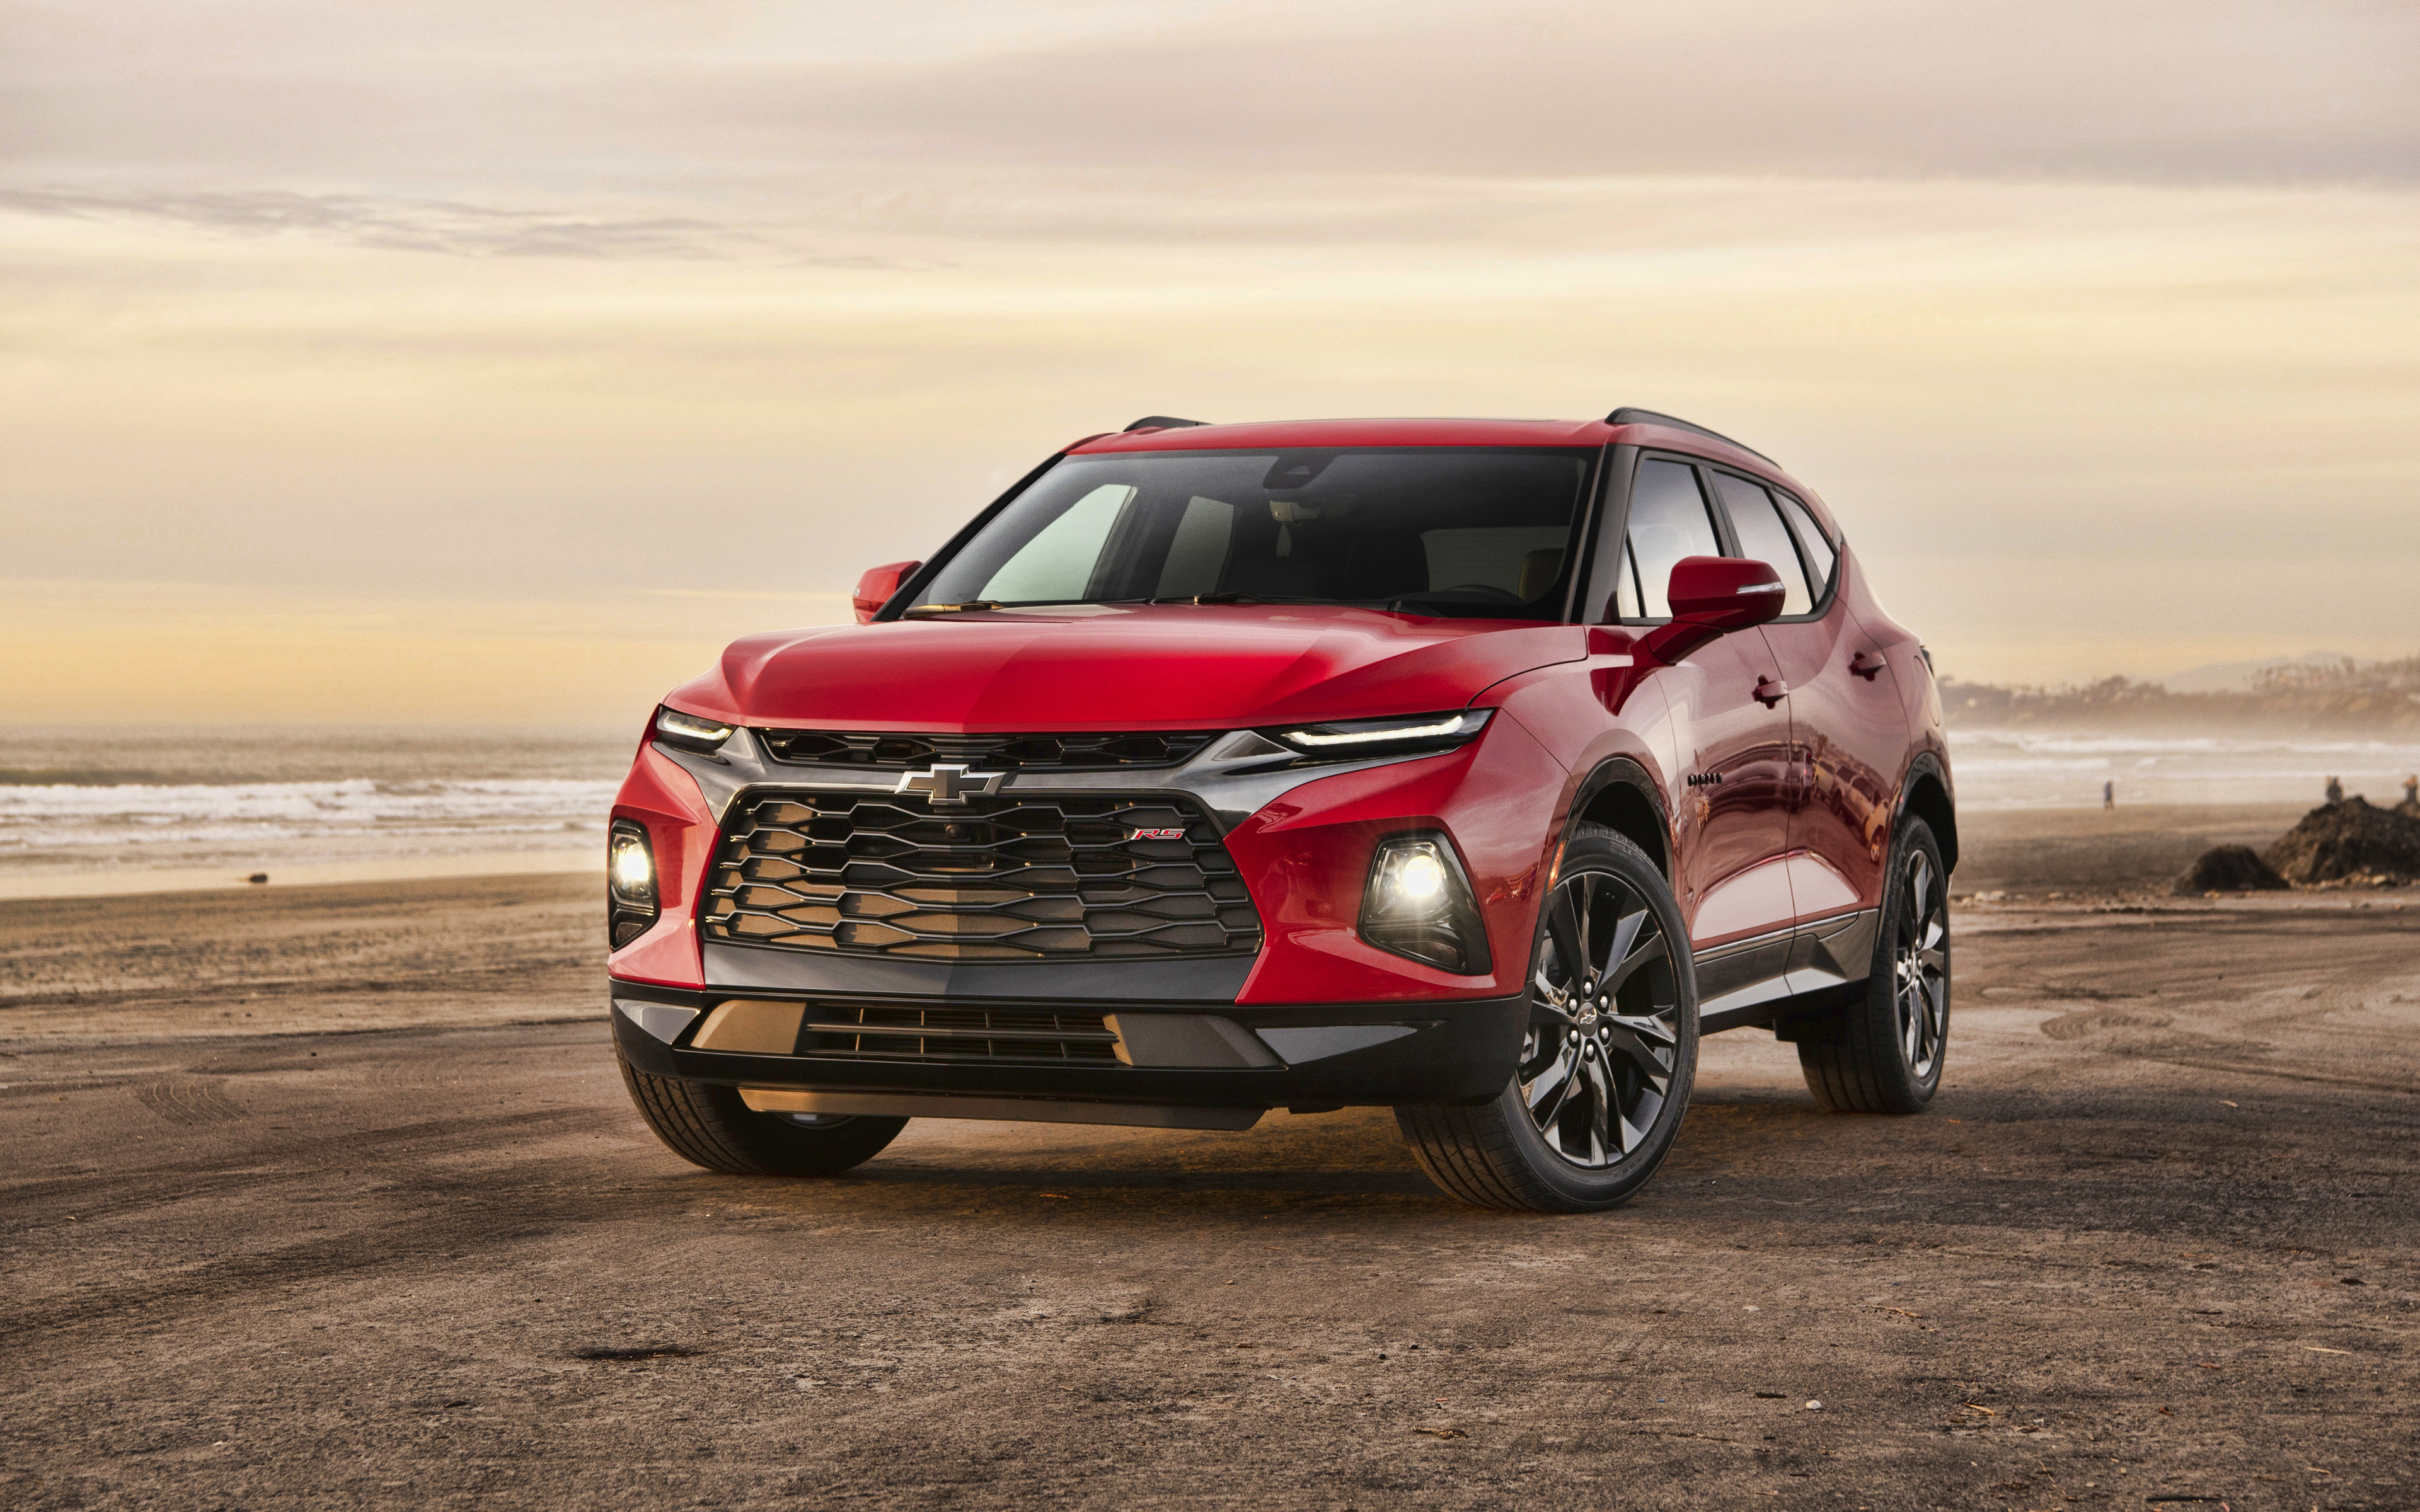 4k, chevrolet blazer rs, offroad, 2019 autos, tuning, suv, neue blazer, 2019 chevrolet blazer rs, amerikanische autos, chevrolet